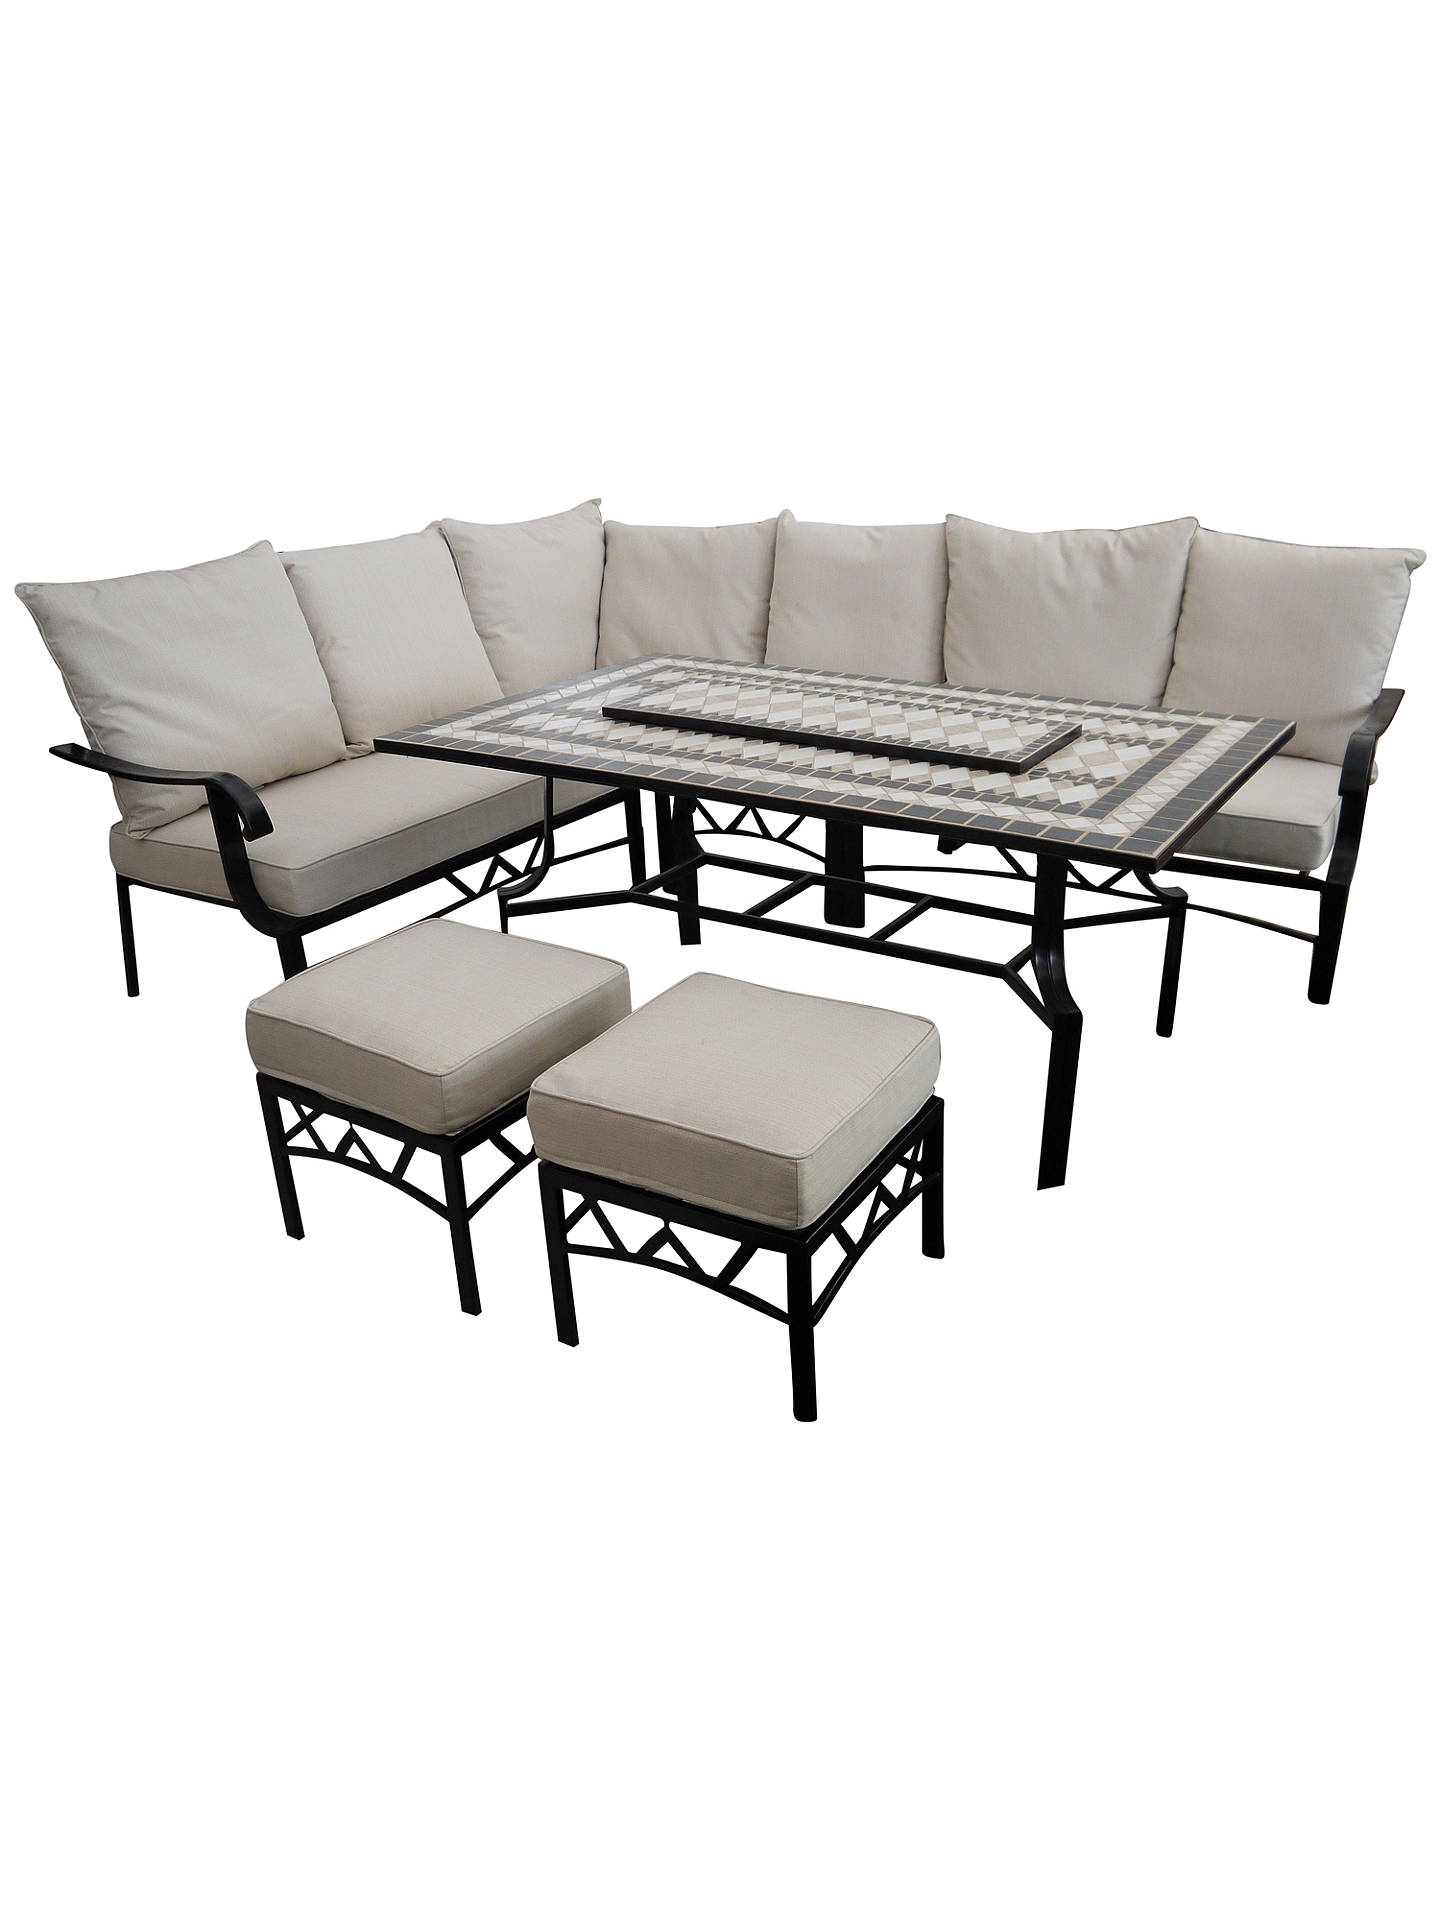 Groovy Lg Outdoor Casablanca 7 Seater Garden Modular Dining Table And Chairs Set With Firepit Charcoal Machost Co Dining Chair Design Ideas Machostcouk